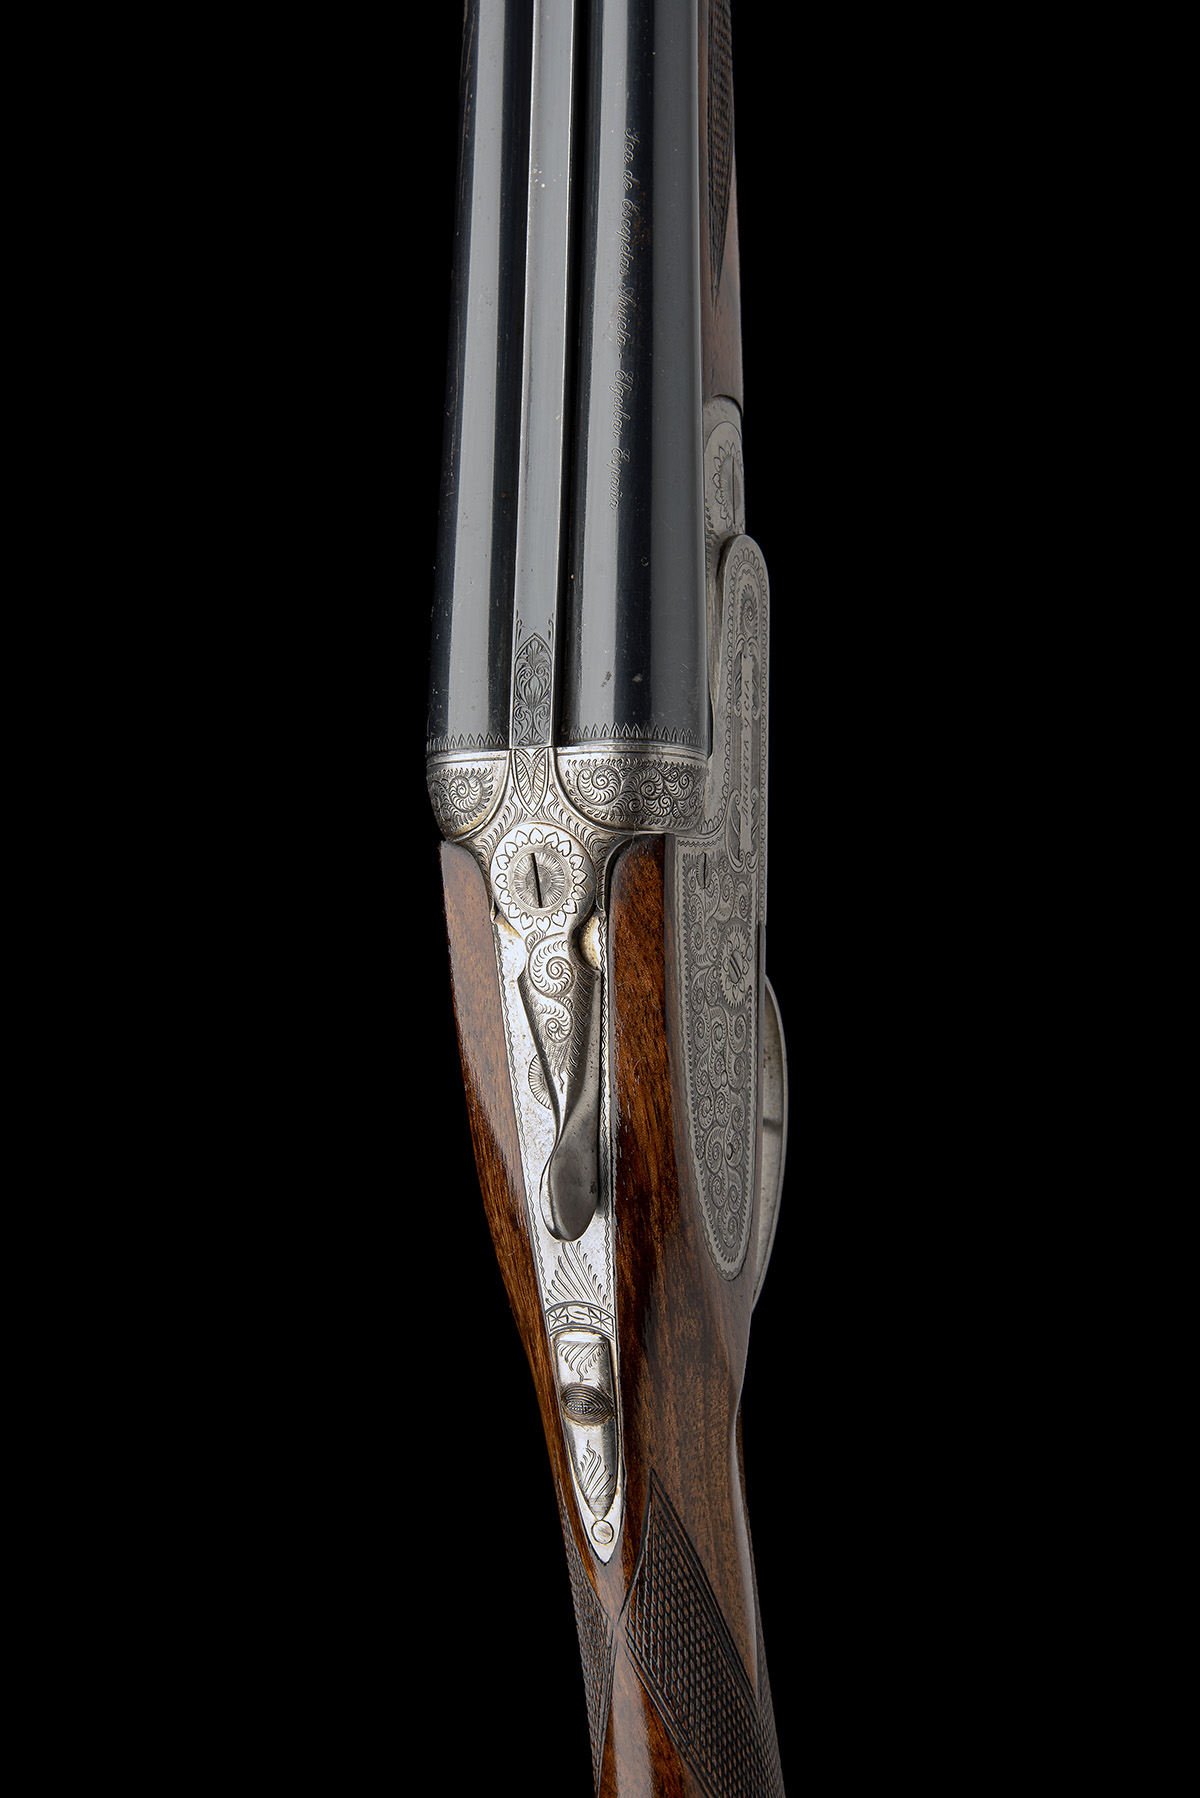 ARRIETA A 28-BORE 'MODEL 557' SIDELOCK EJECTOR, serial no. 16-03, for 2003, full Spanish code 57- - Image 6 of 8